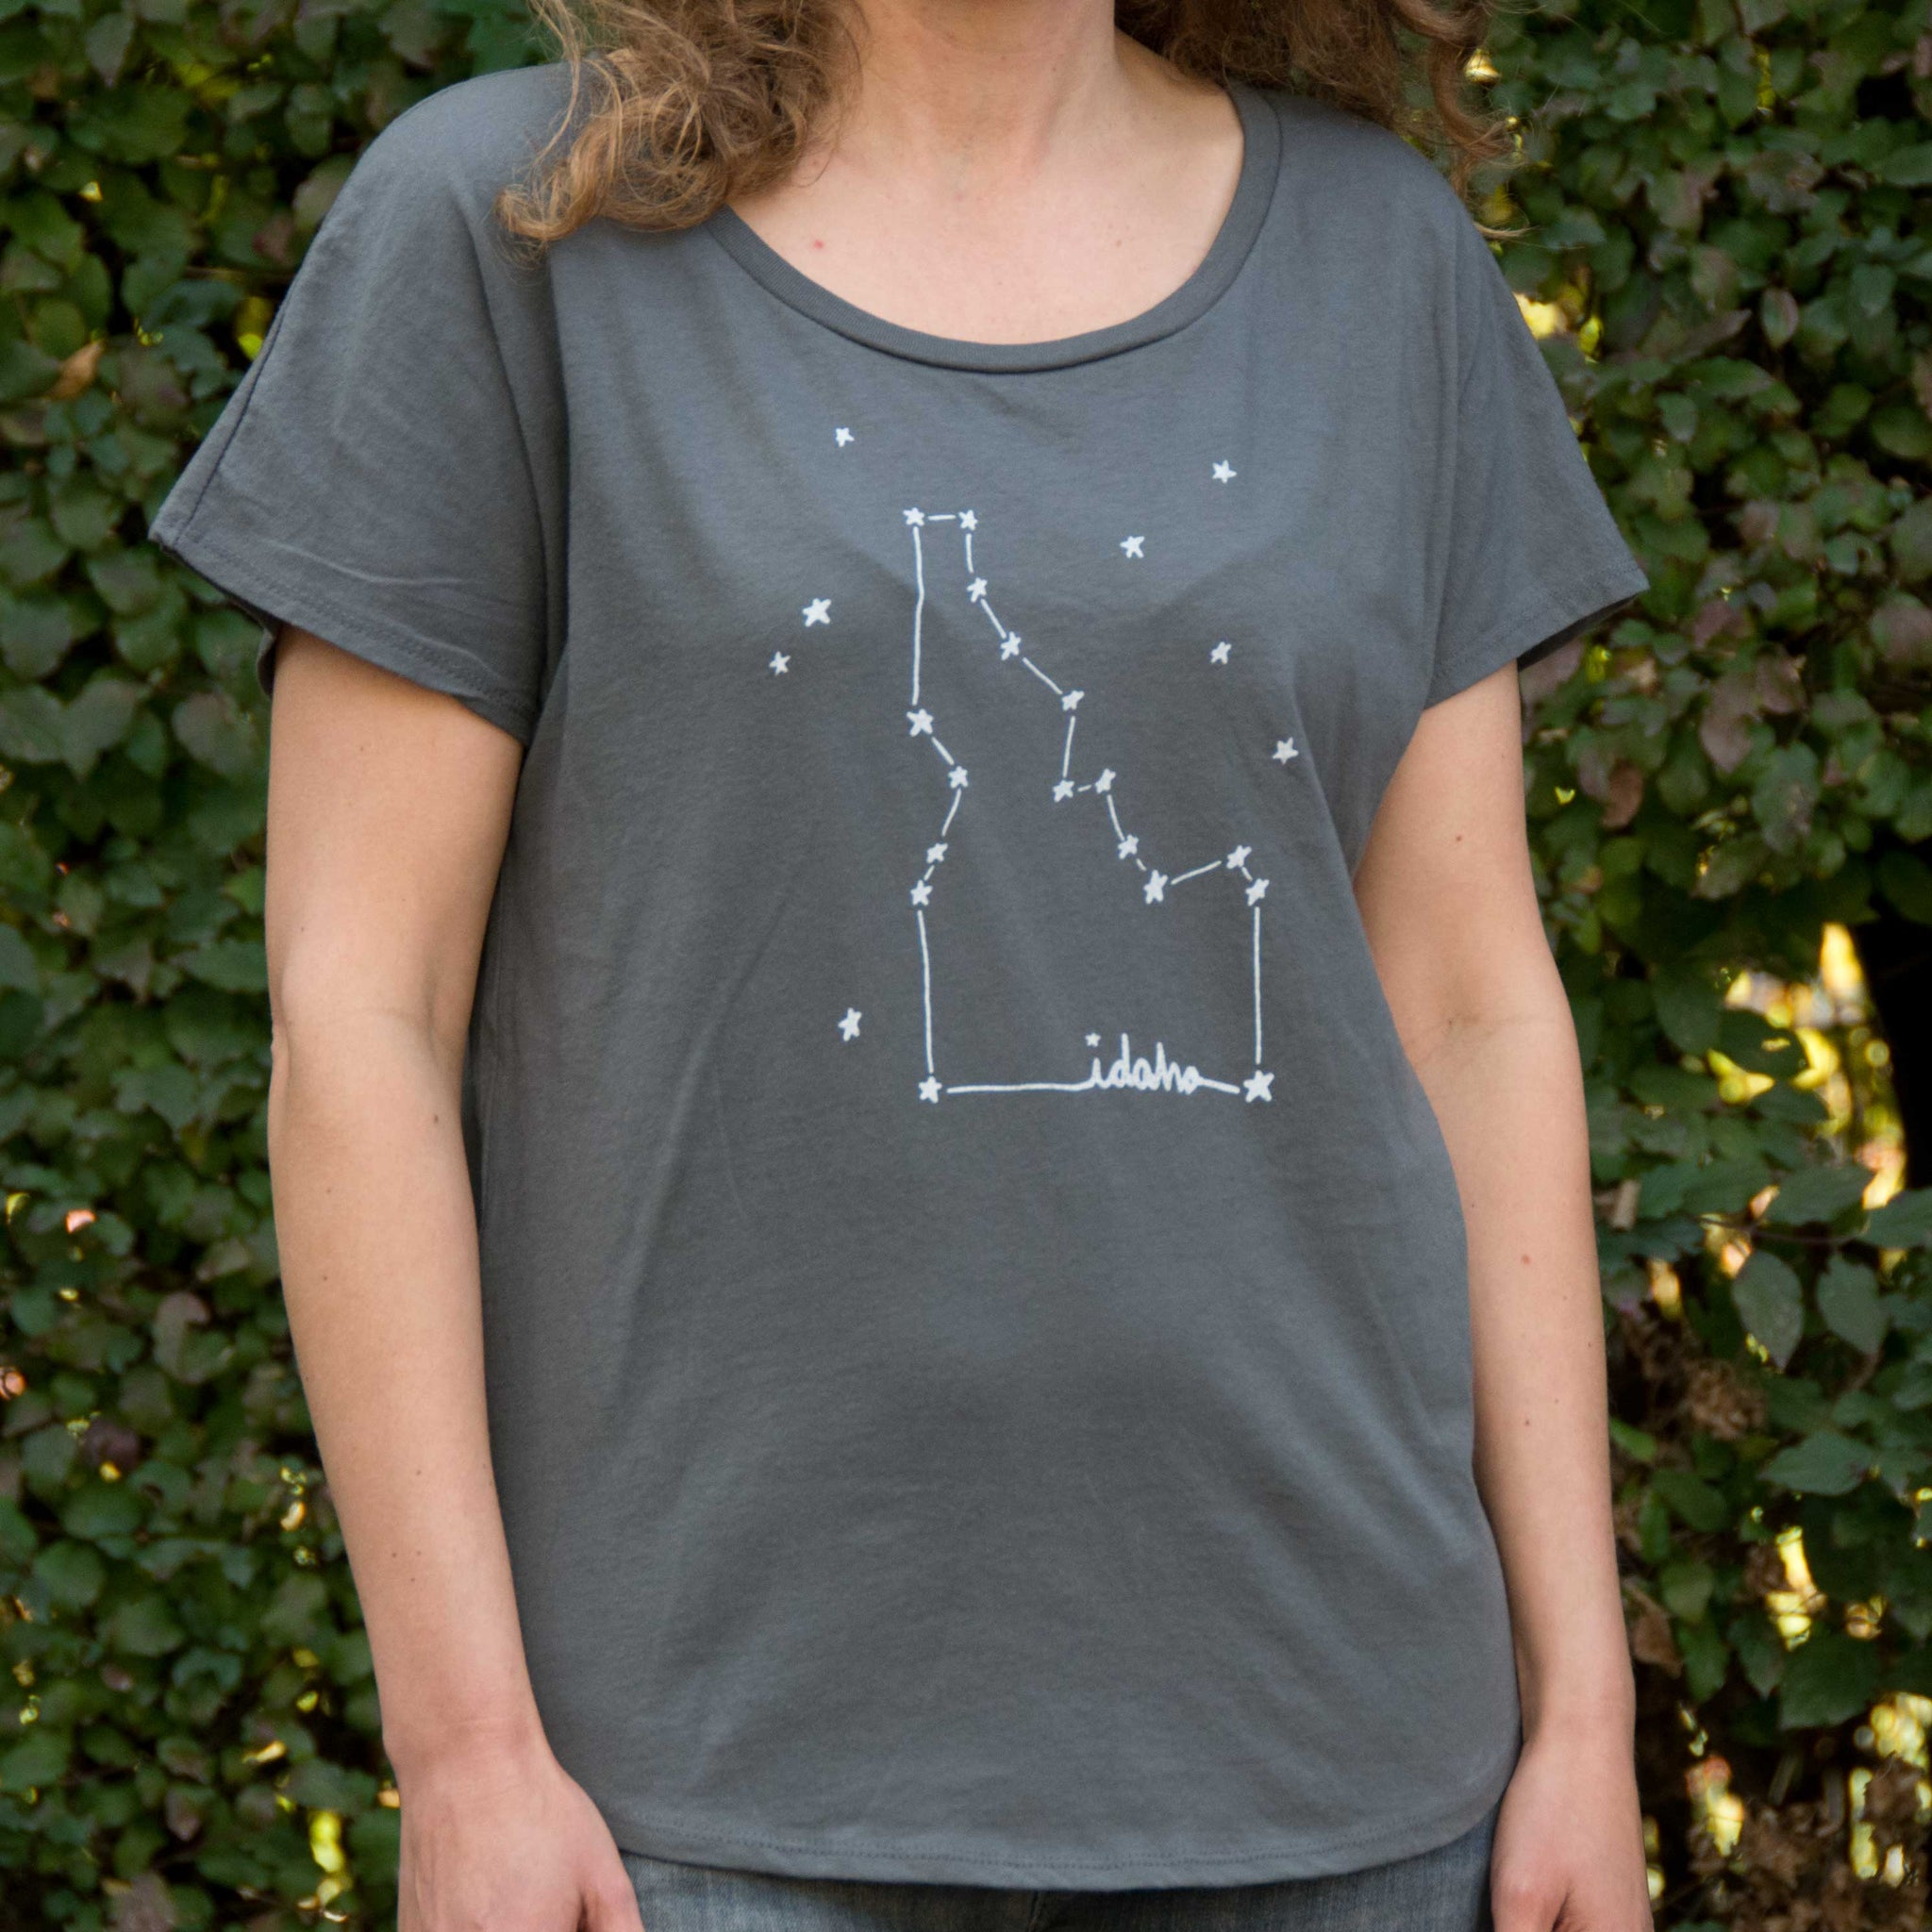 Women's Idaho Constellation T-shirt, screen printed with eco-friendly waterbased inks, adult sizes